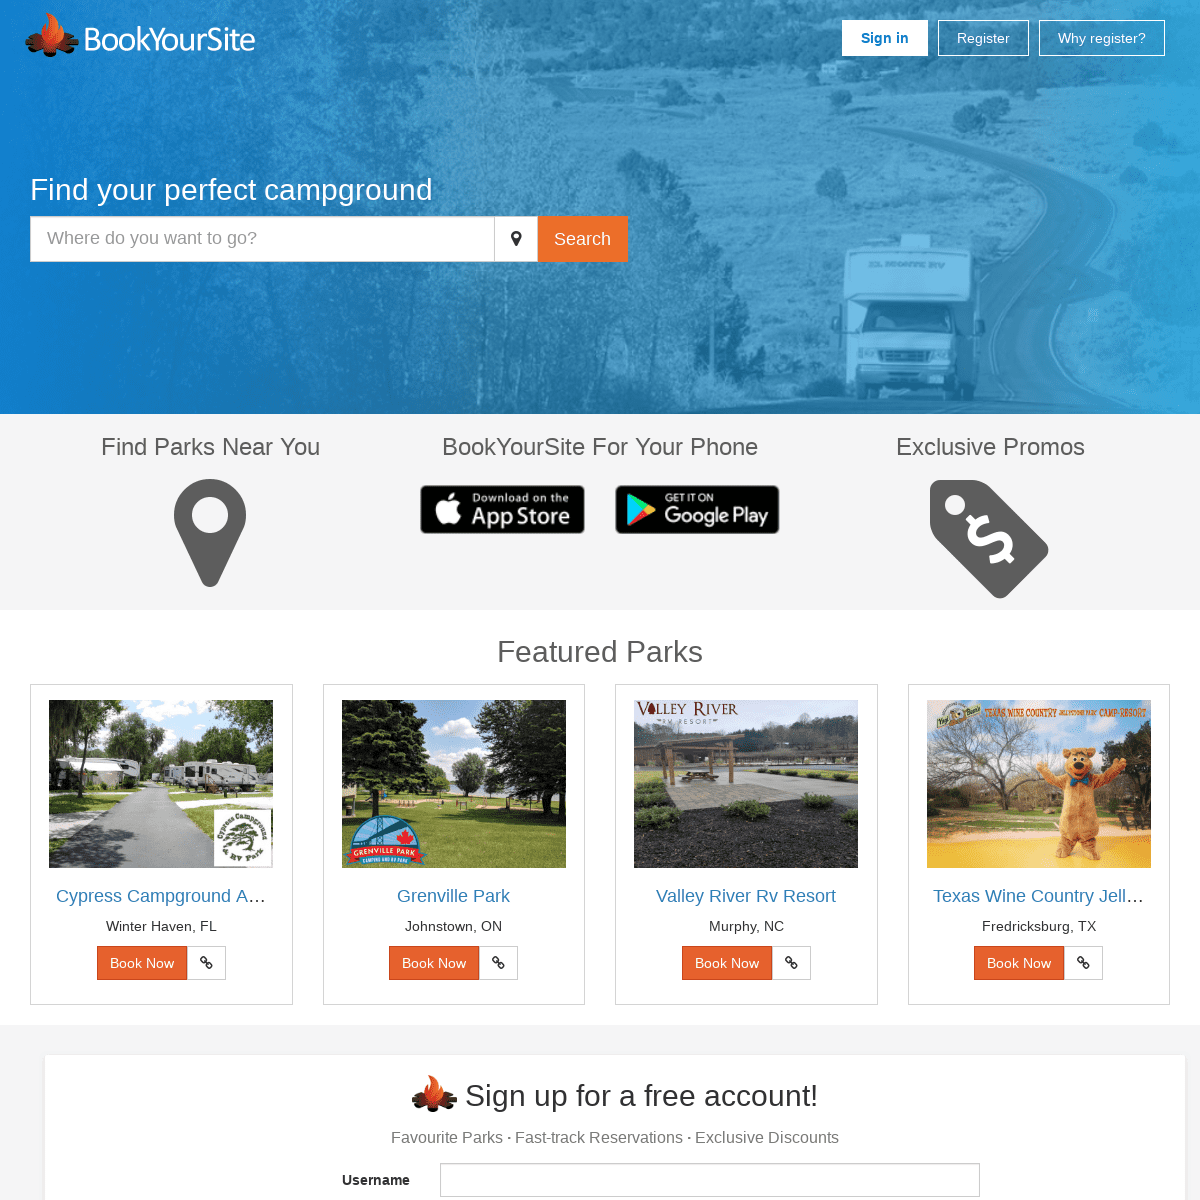 Online Campground and RV Park Reservations - BookYourSite